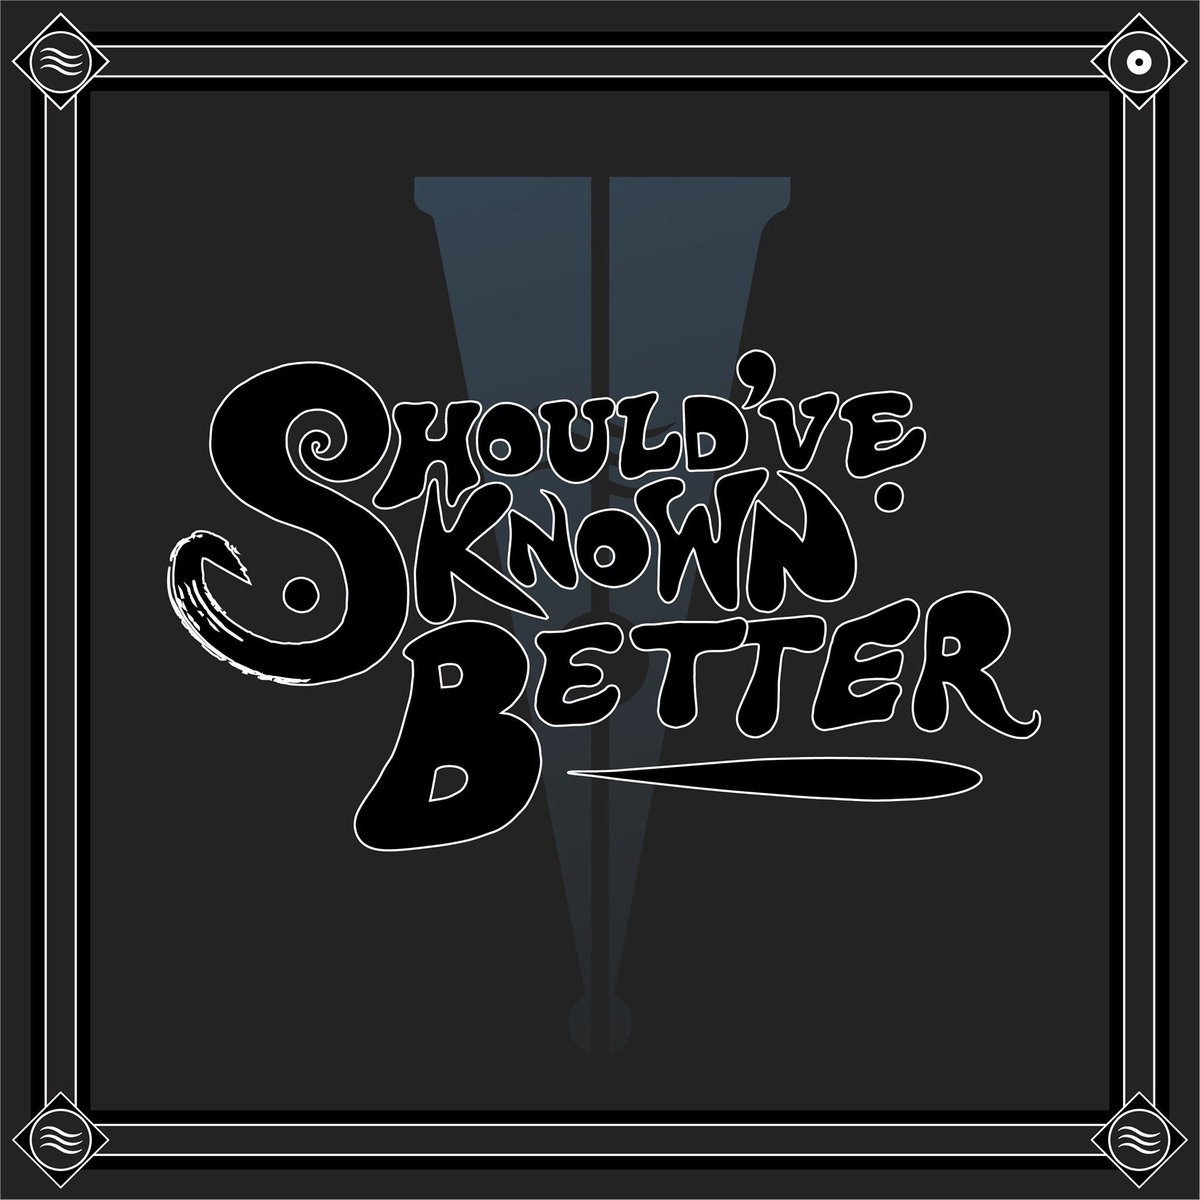 """OUR NEW DOUBLE A-SIDE """"SHOULD'VE KNOWN BETTER""""/""""FOOLIN' MANKIND"""" IS OUT TODAY! Available from all digital retailers and in Hard Copy from  http://www. thesewickedrivers.com/Products  &nbsp;     GO GO GO!   #Rock #NewMusic #SKB #TheseWickedRivers<br>http://pic.twitter.com/duVUKzjLKk"""